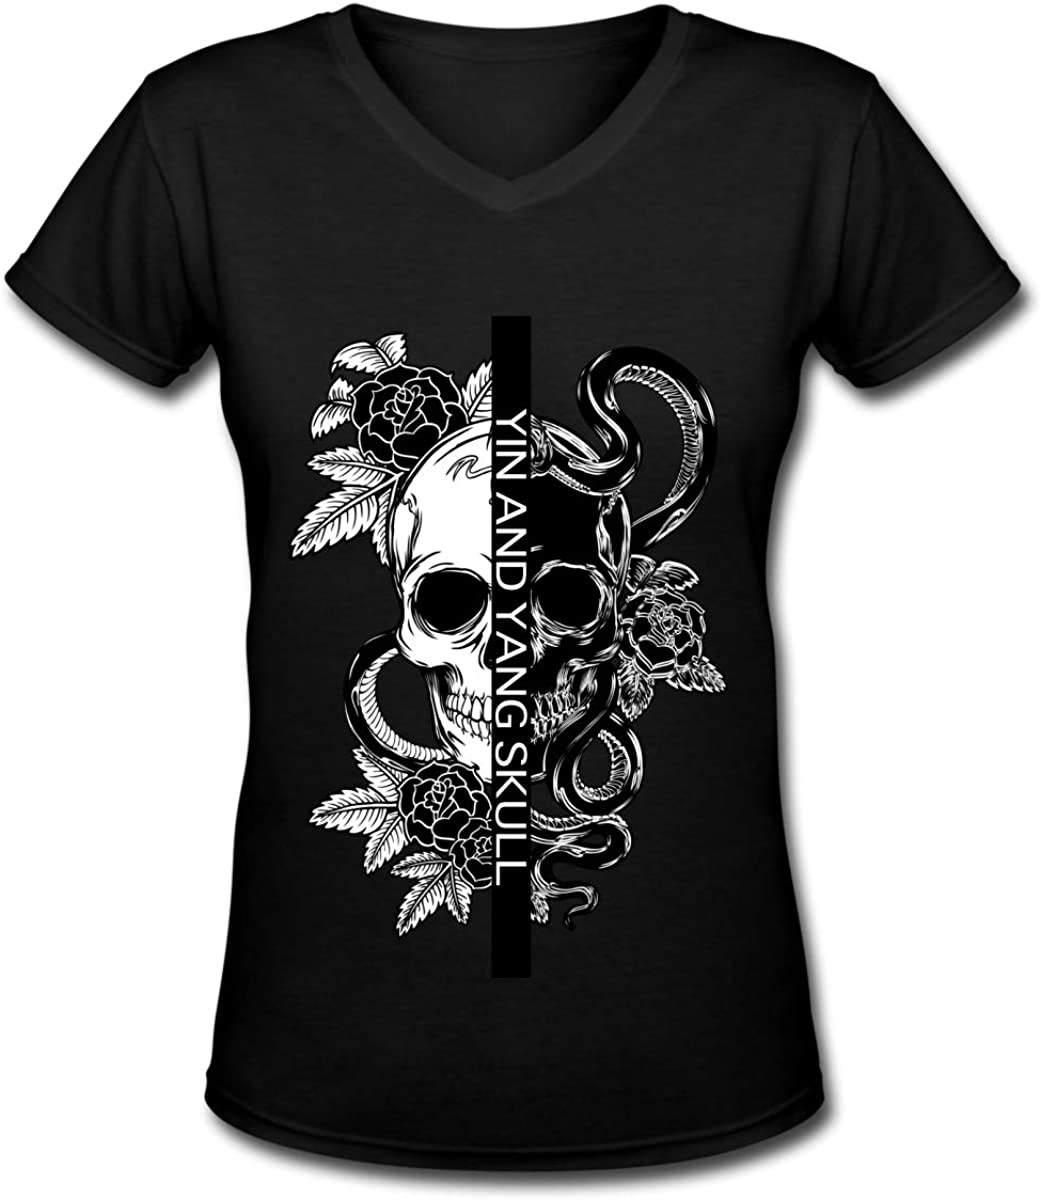 Apparel Women's V-Neck T-Shirt Casual Lamb of God 2 Printed Short Sleeve Tee Tops Trendy